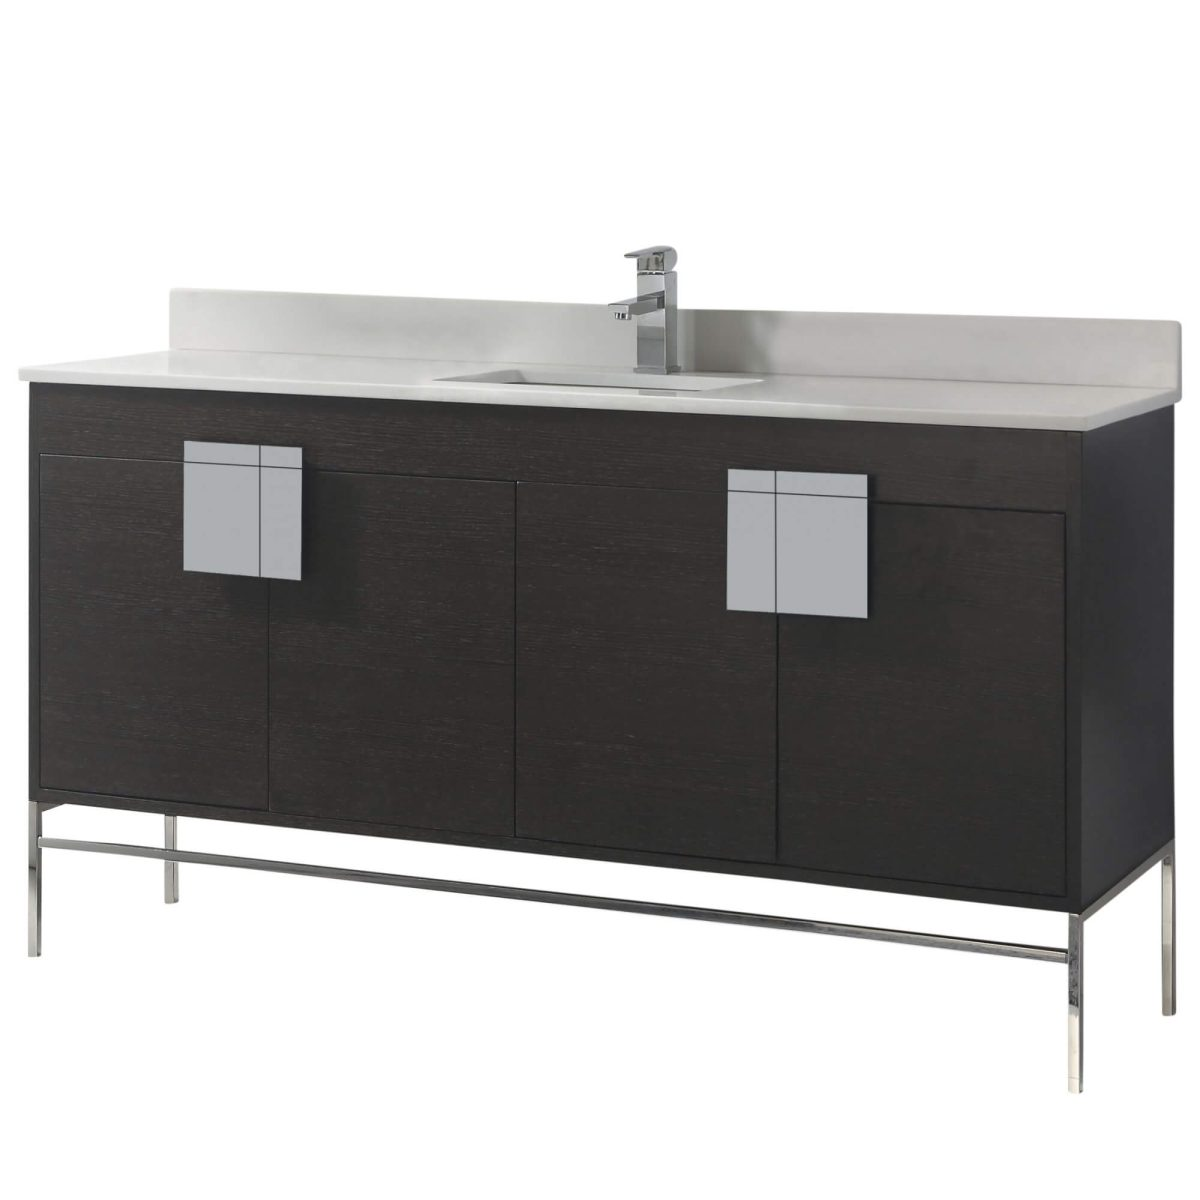 "Shawbridge 60"" Modern Single Bathroom Vanity  Black Oak Straight Grain with Polished Chrome Hardware"